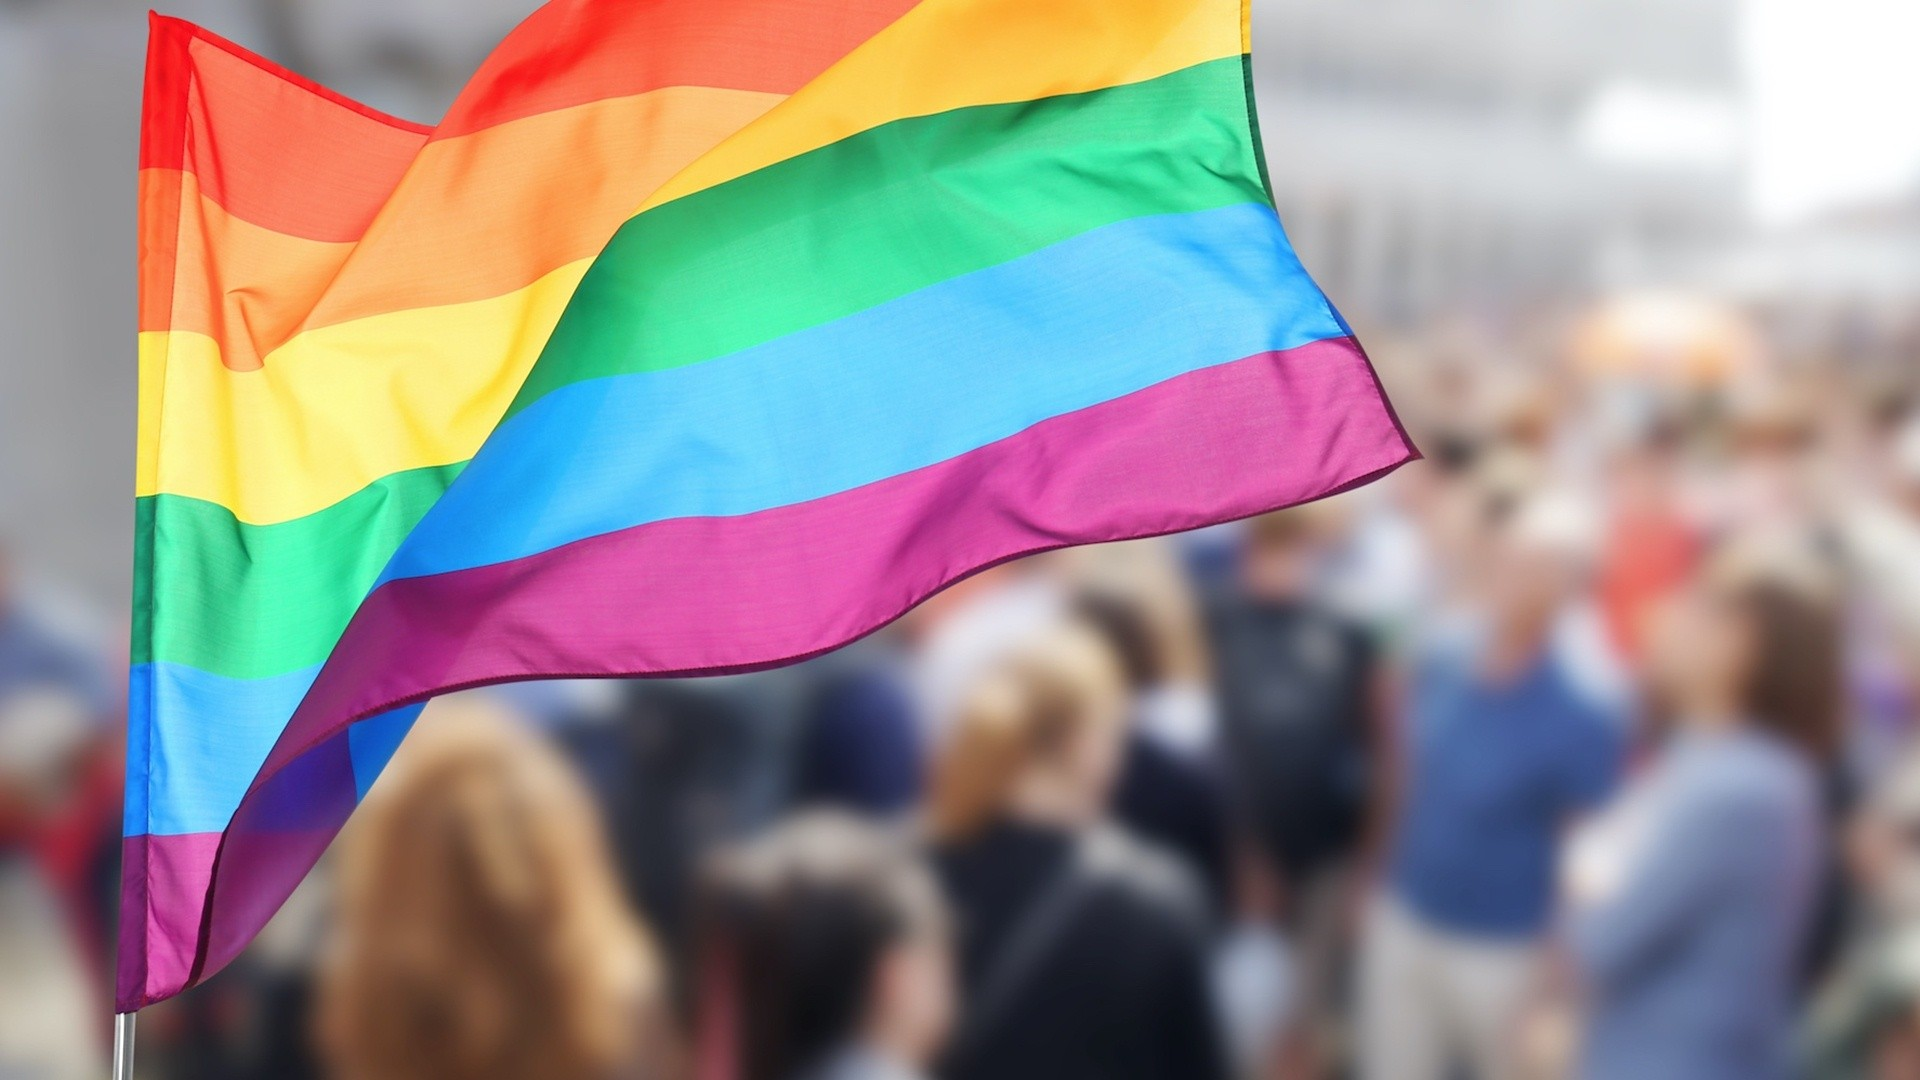 Some info about the LGBT